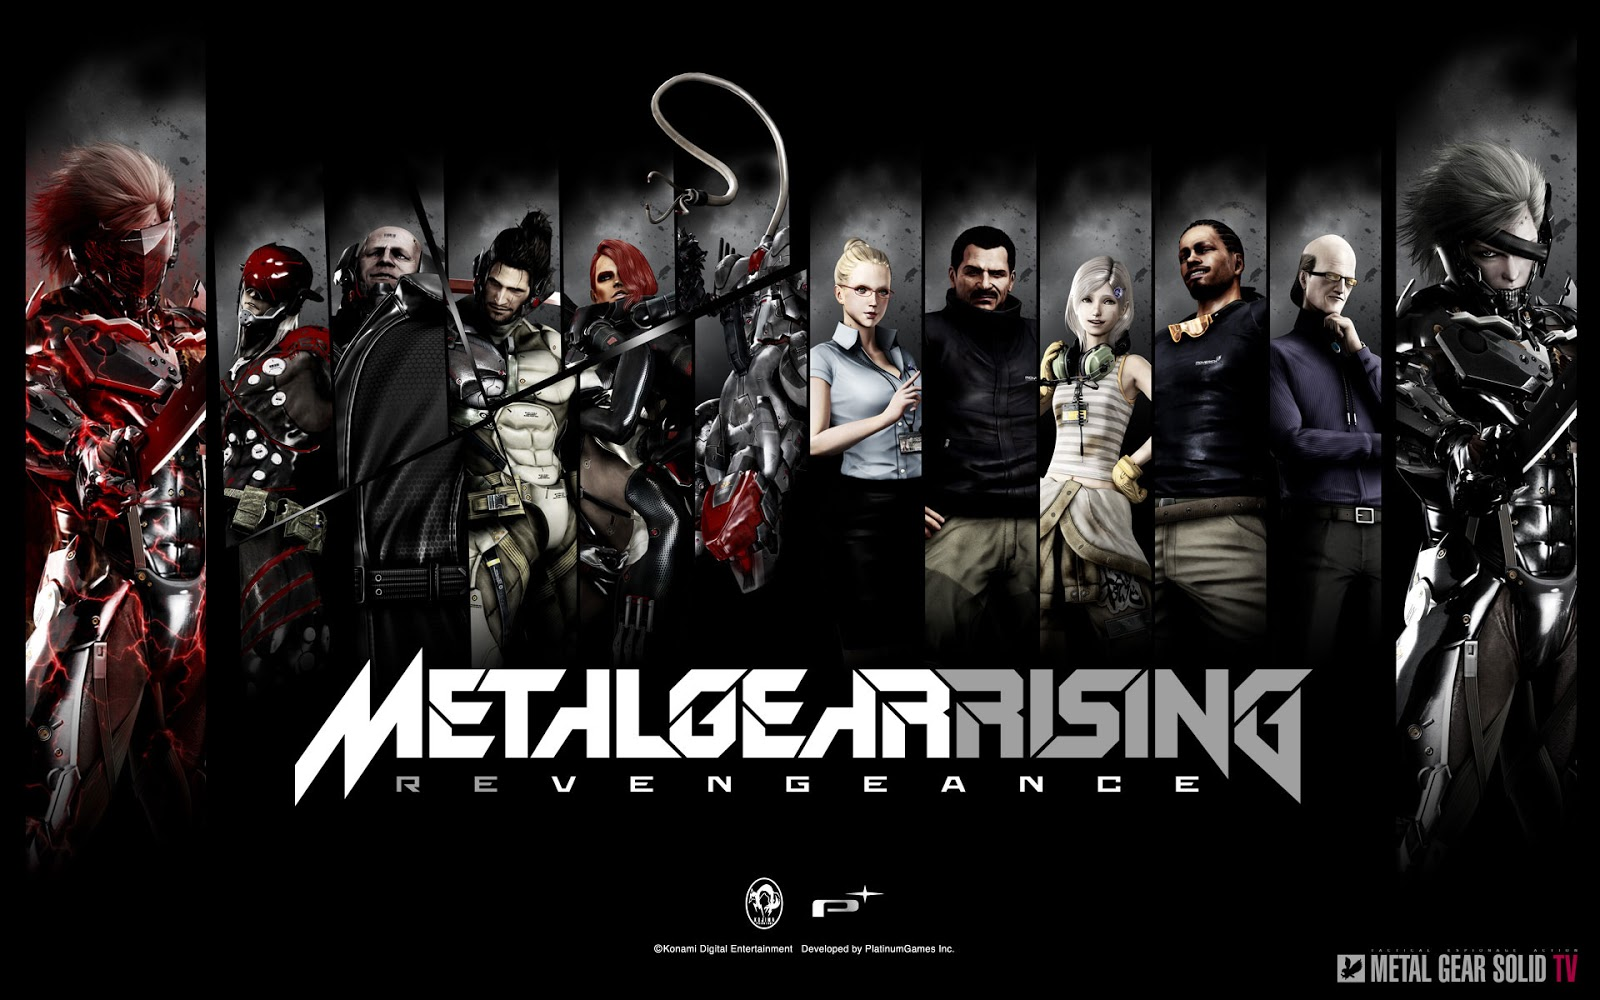 Metal Gear Solid Iphone Wallpaper Metal Gear Rising Revengeance Wallpaper And Background